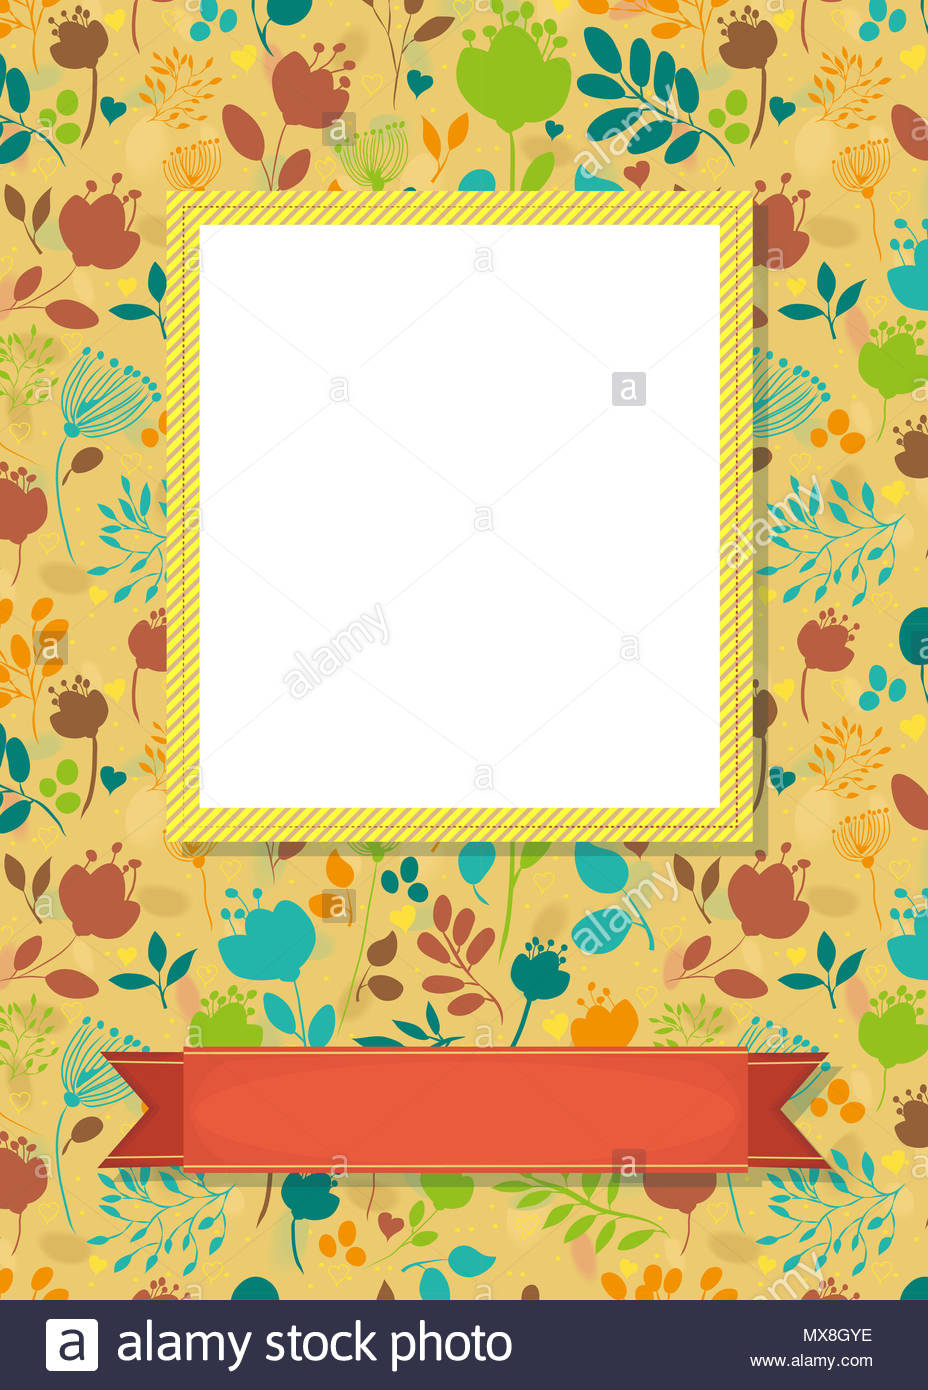 Floral Greeting Card Graceful Colorful Silhouettes Of Flowers And